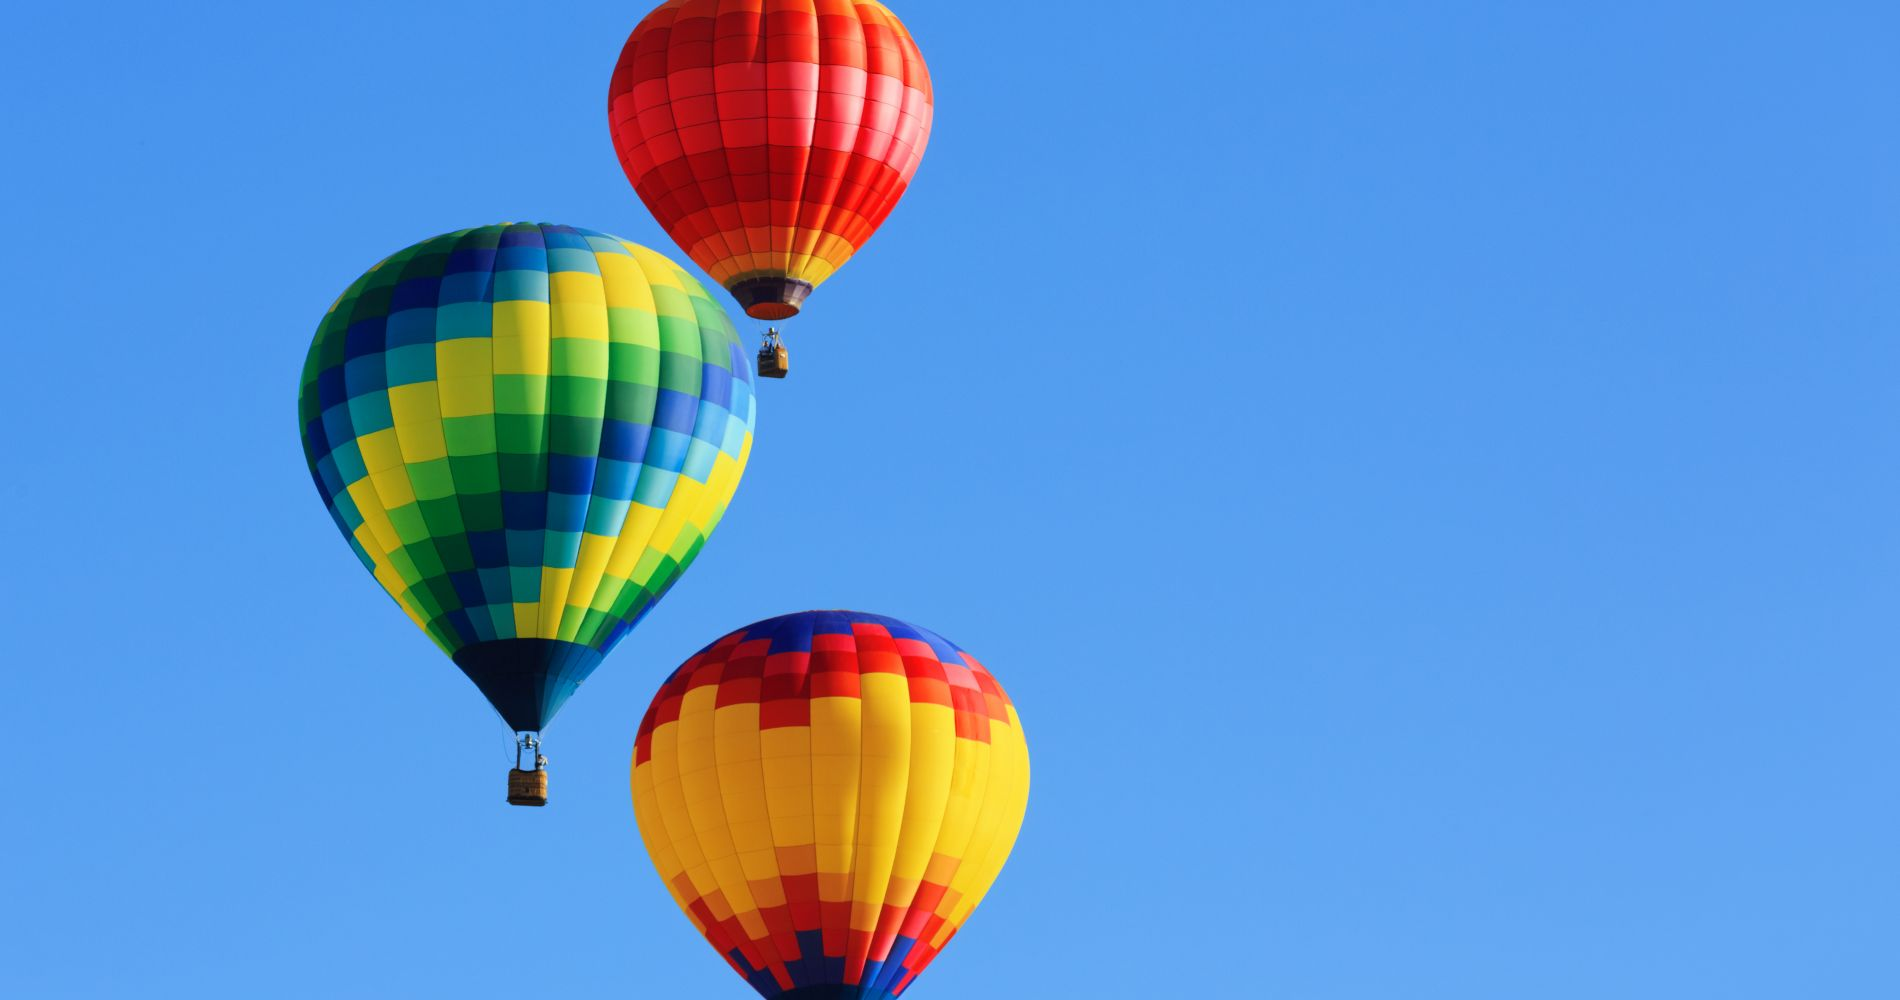 Hot Air Balloon Flight near Seattle